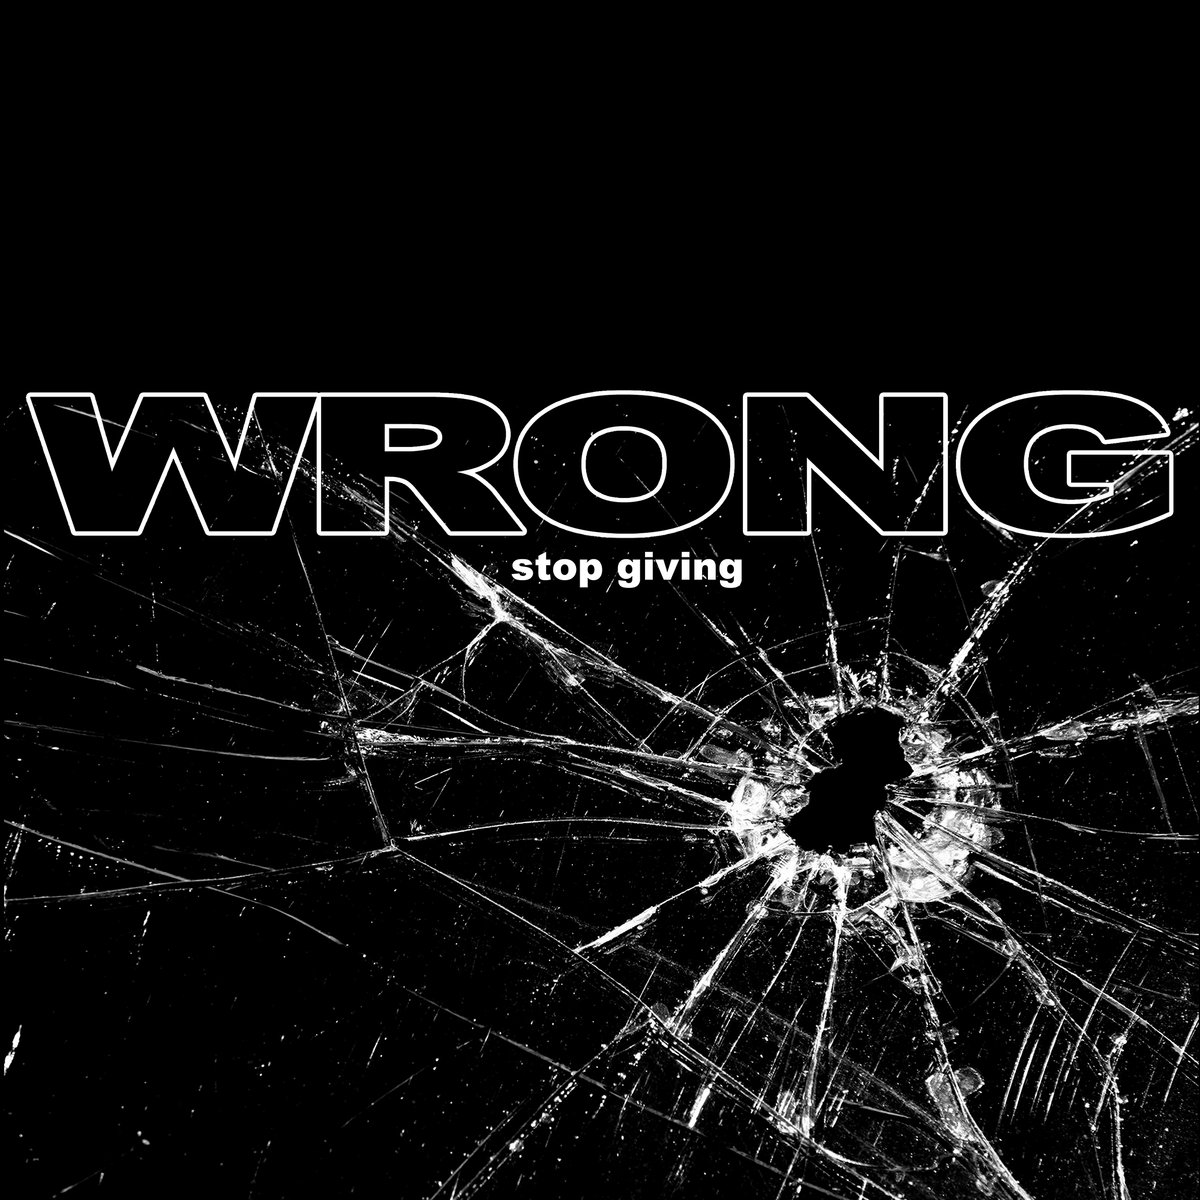 WRONG Stop Giving EP - Vinyl LP